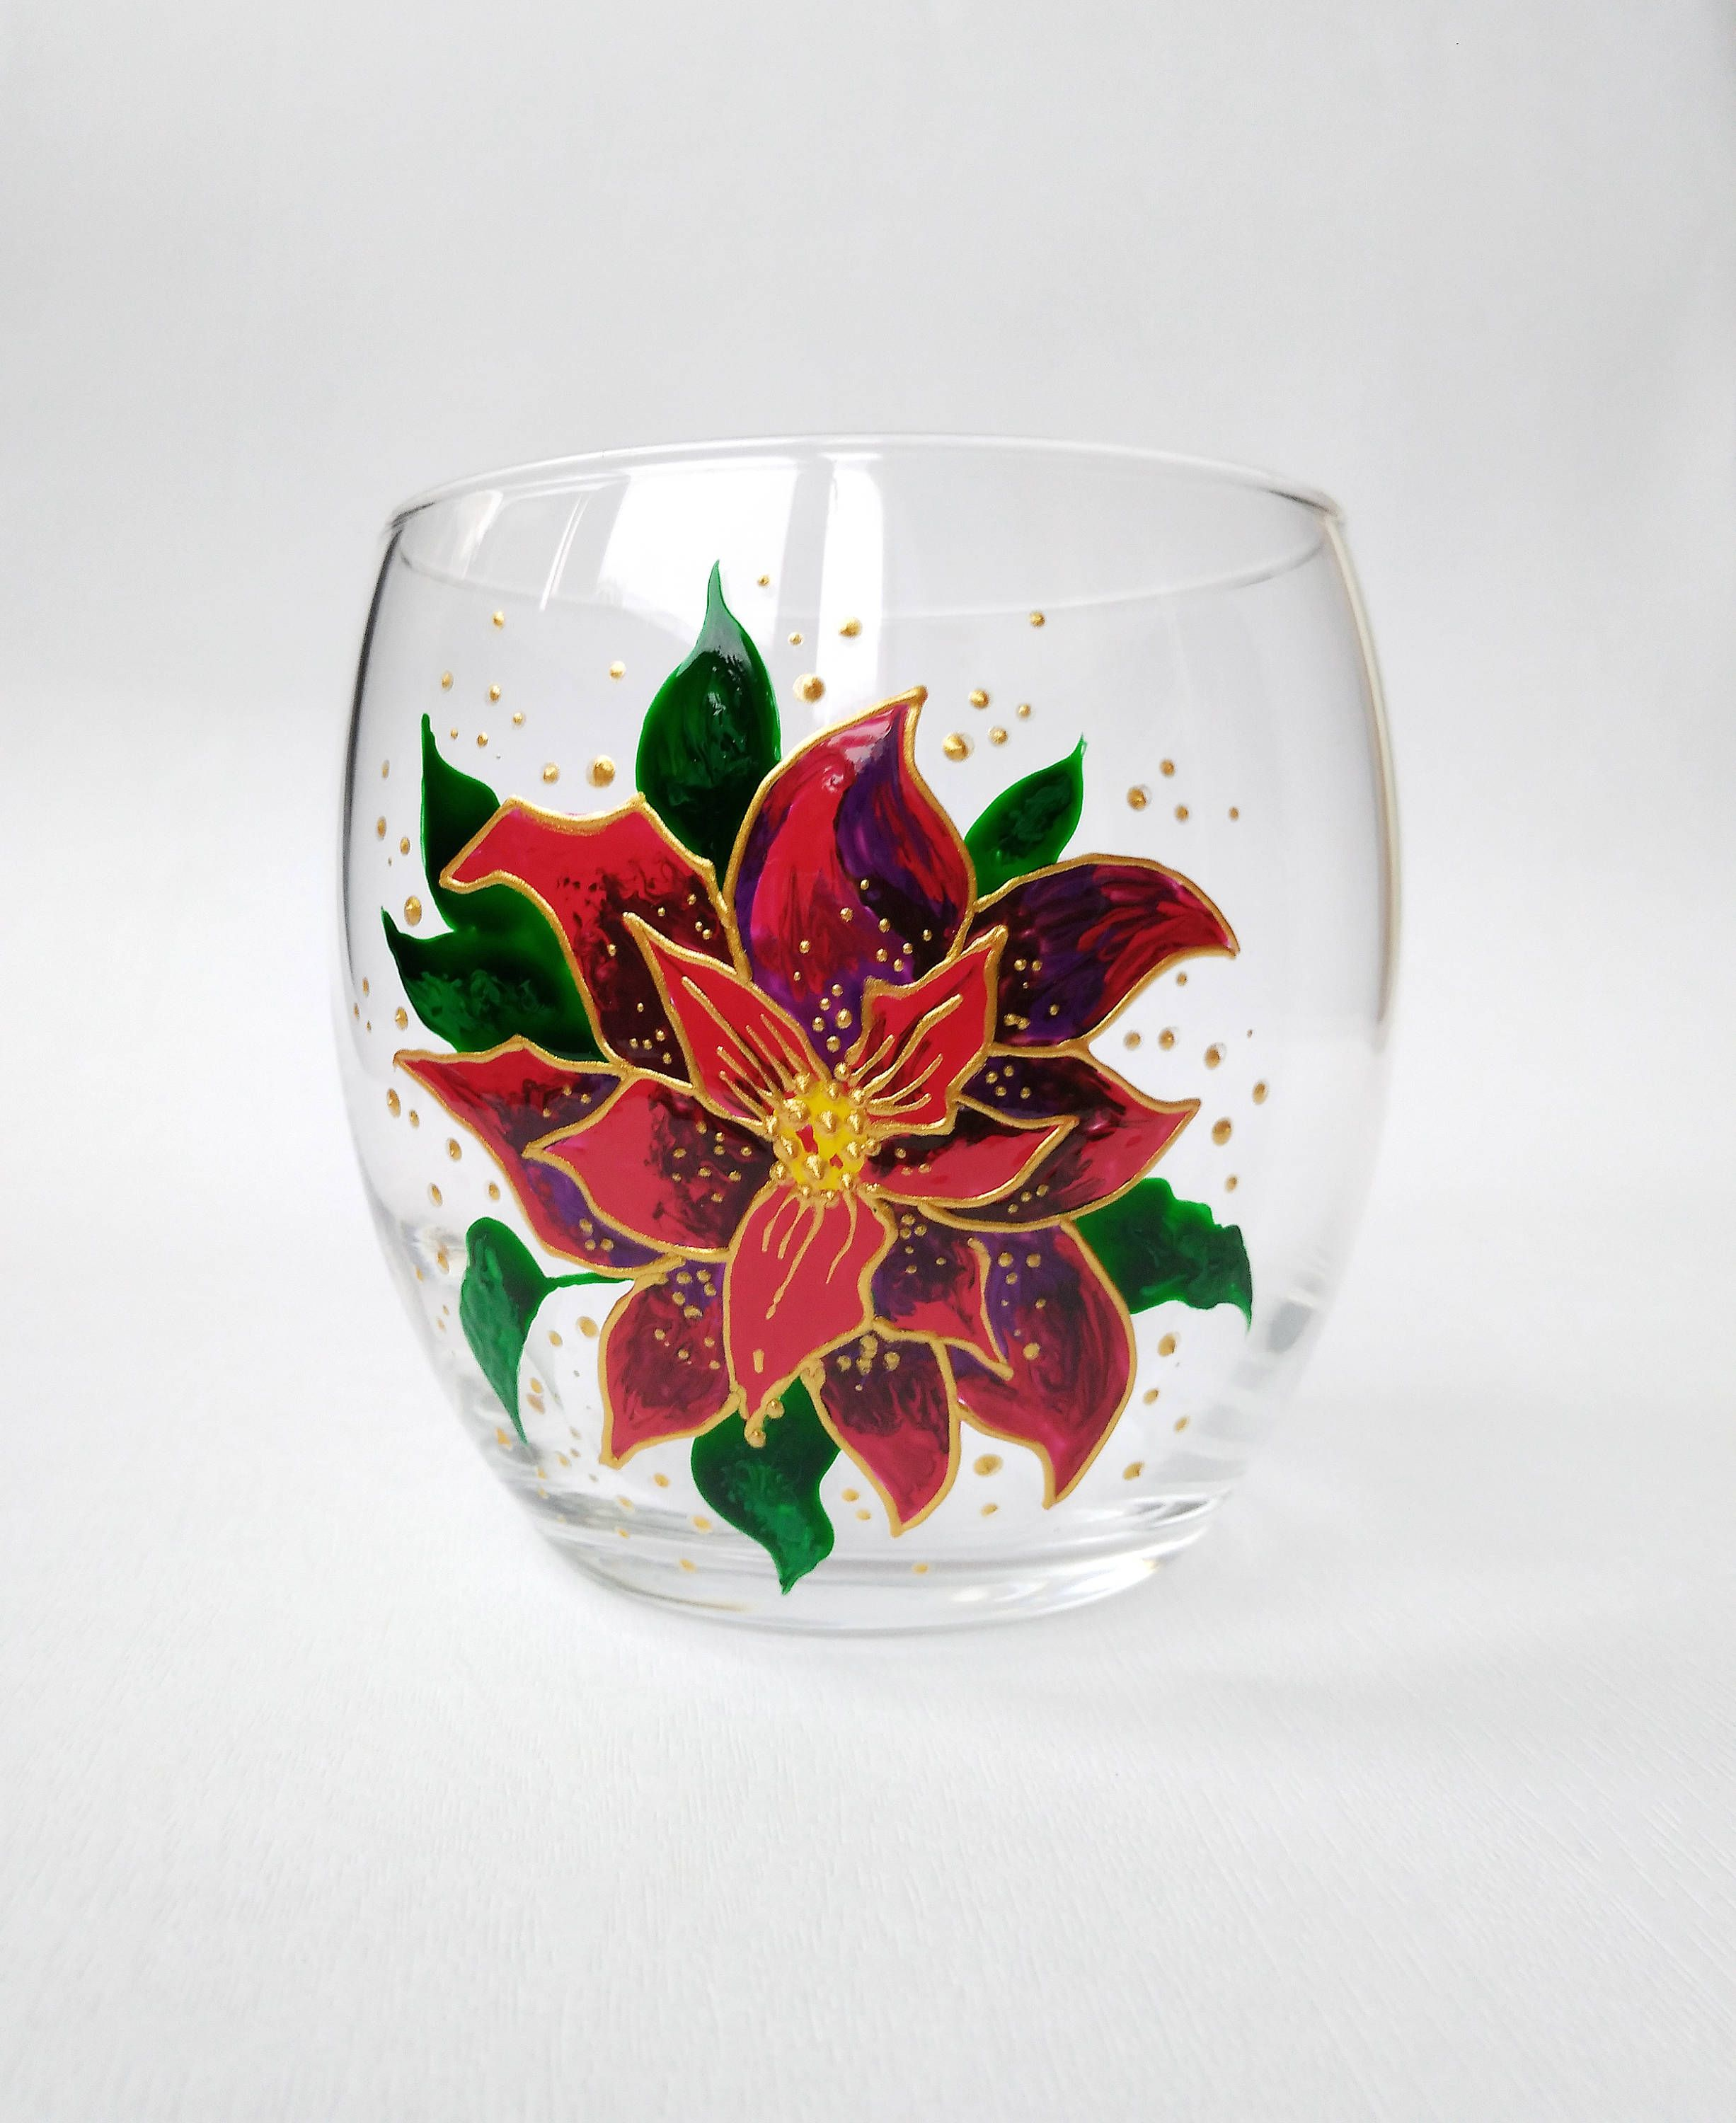 Christmas Gift Poinsettia Wine Glass Stemless Wine Glasses Red Flower Glasses Personal Painted Wine Glasses Christmas Christmas Wine Glasses Painted Wine Glass